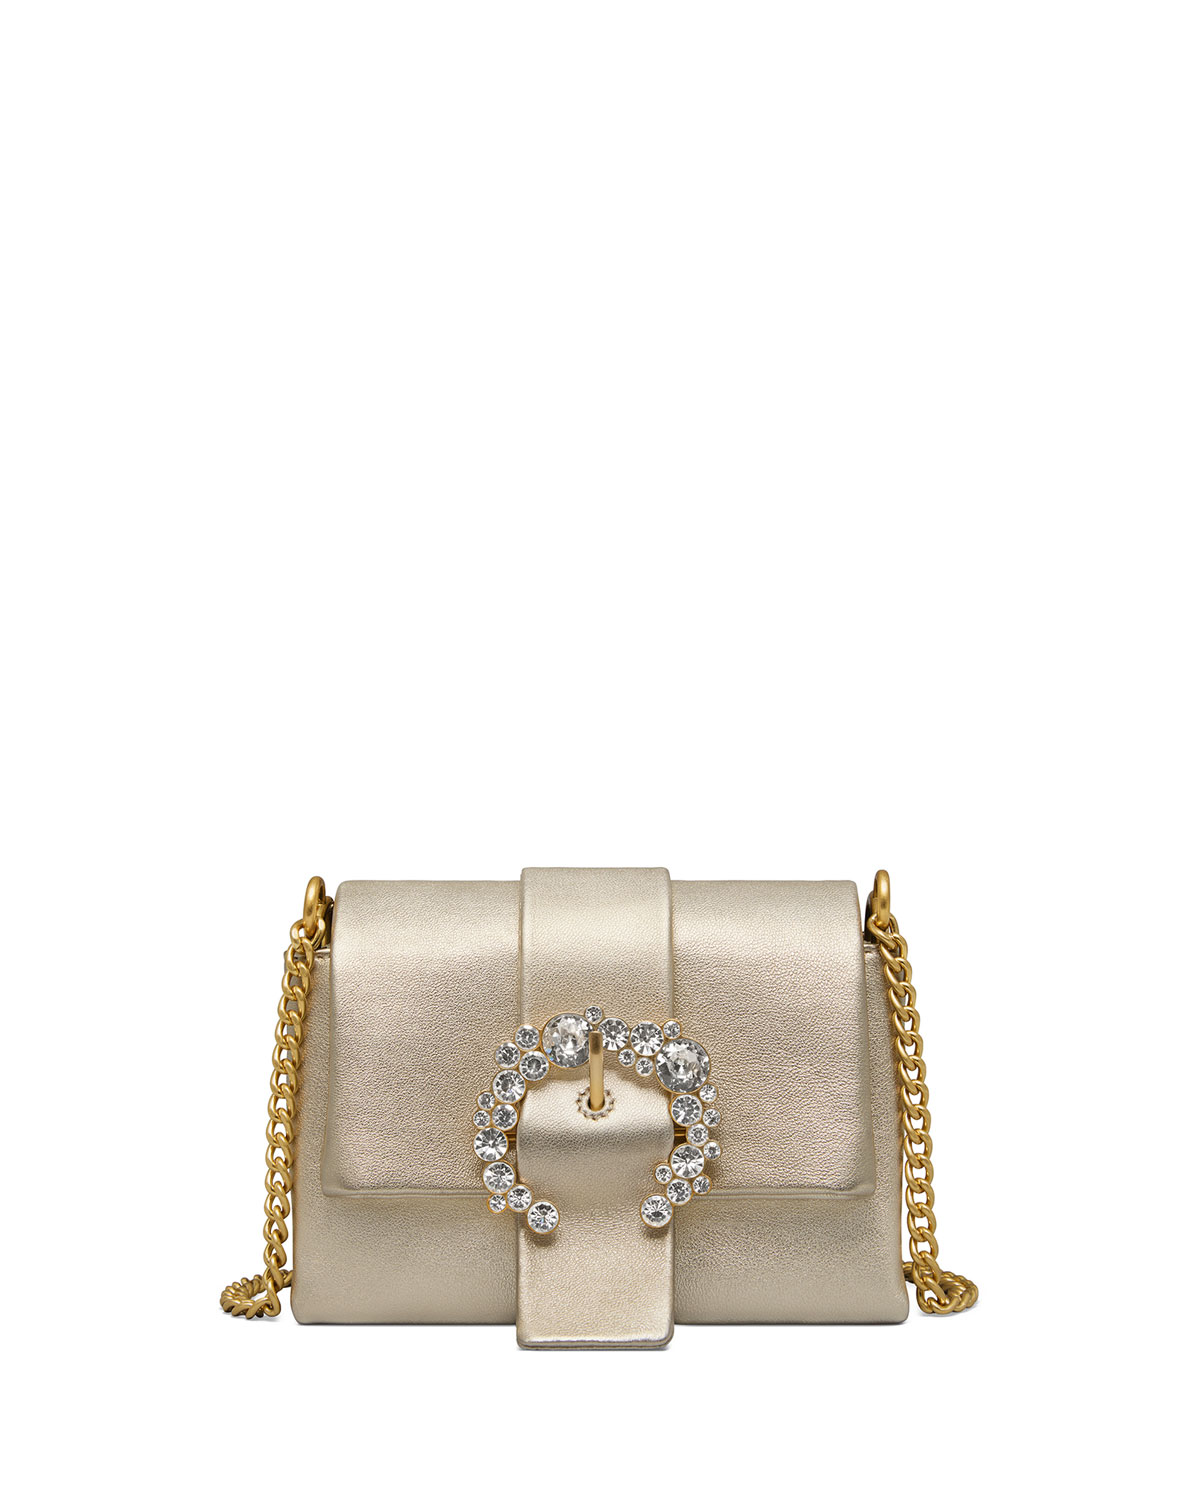 Tory BurchGreer Mini Metallic Leather Crossbody Bag.  328.00.  100 Off with  your ... 8bb159b6a2866